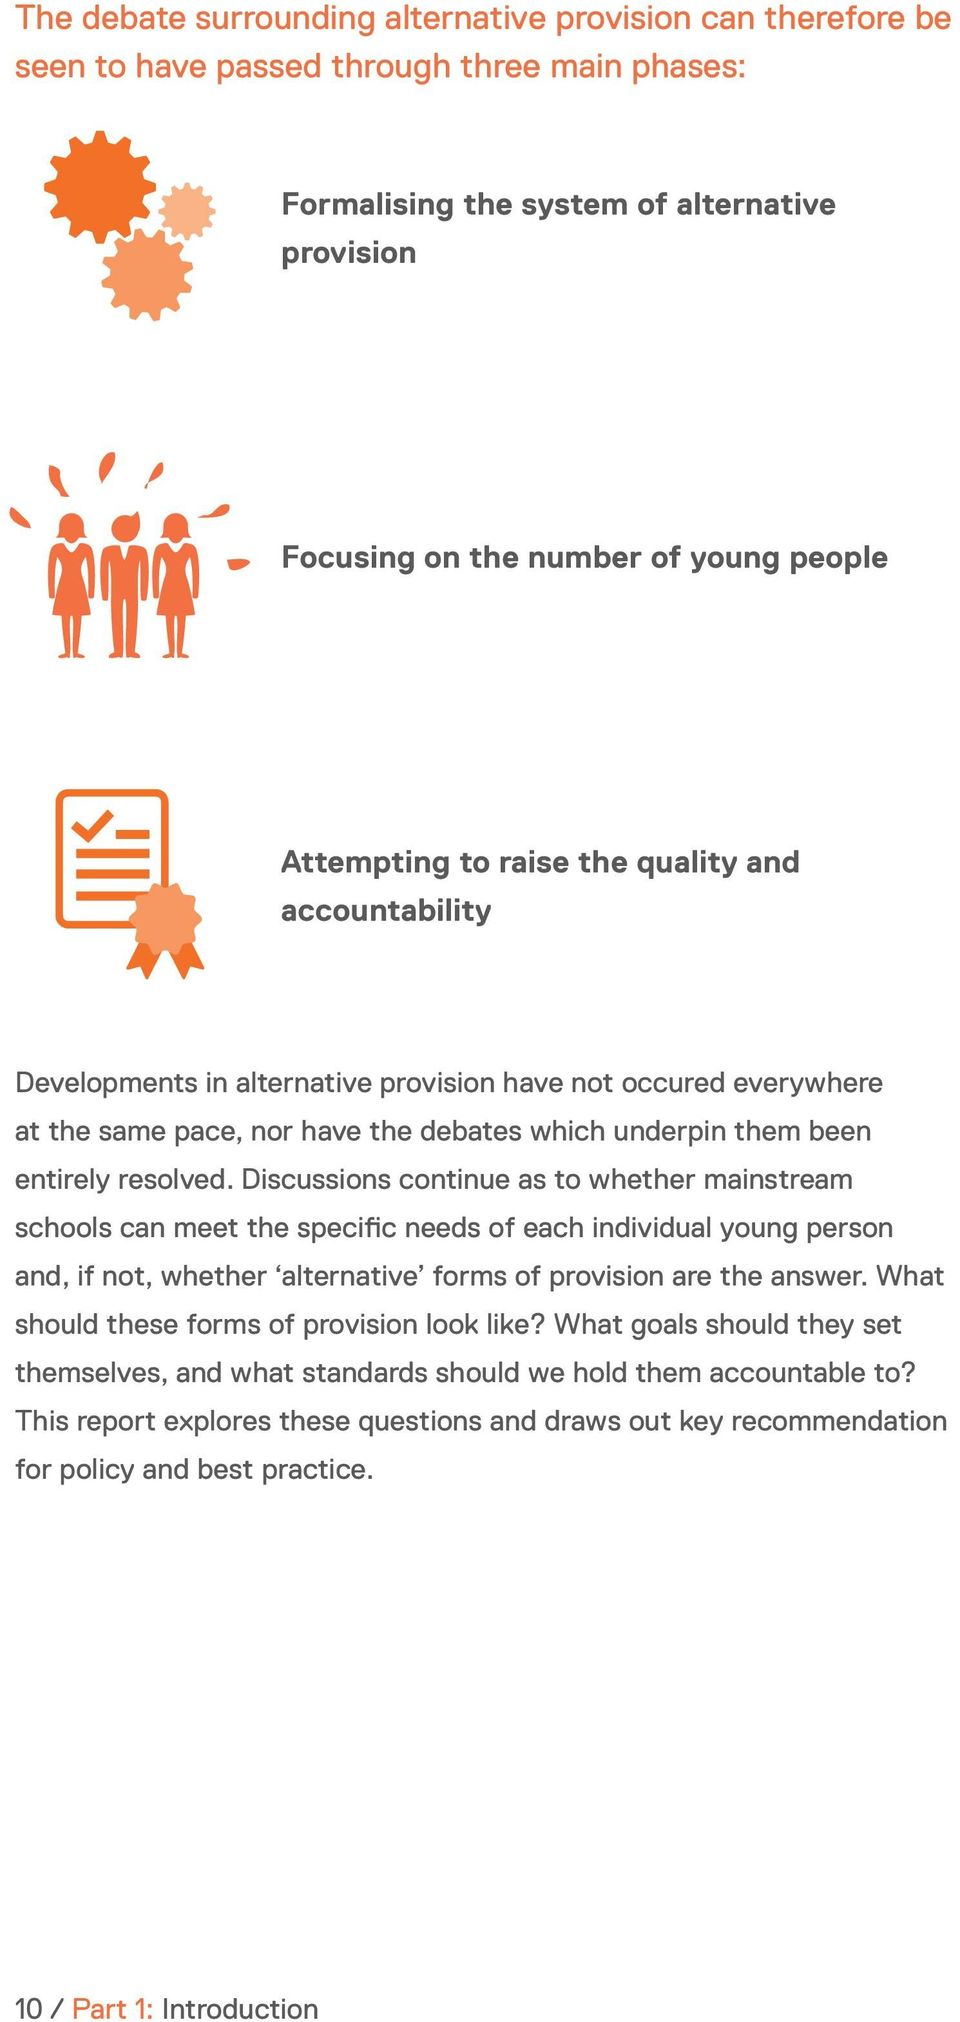 Discussions continue as to whether mainstream schools can meet the specific needs of each individual young person and, if not, whether alternative forms of provision are the answer.